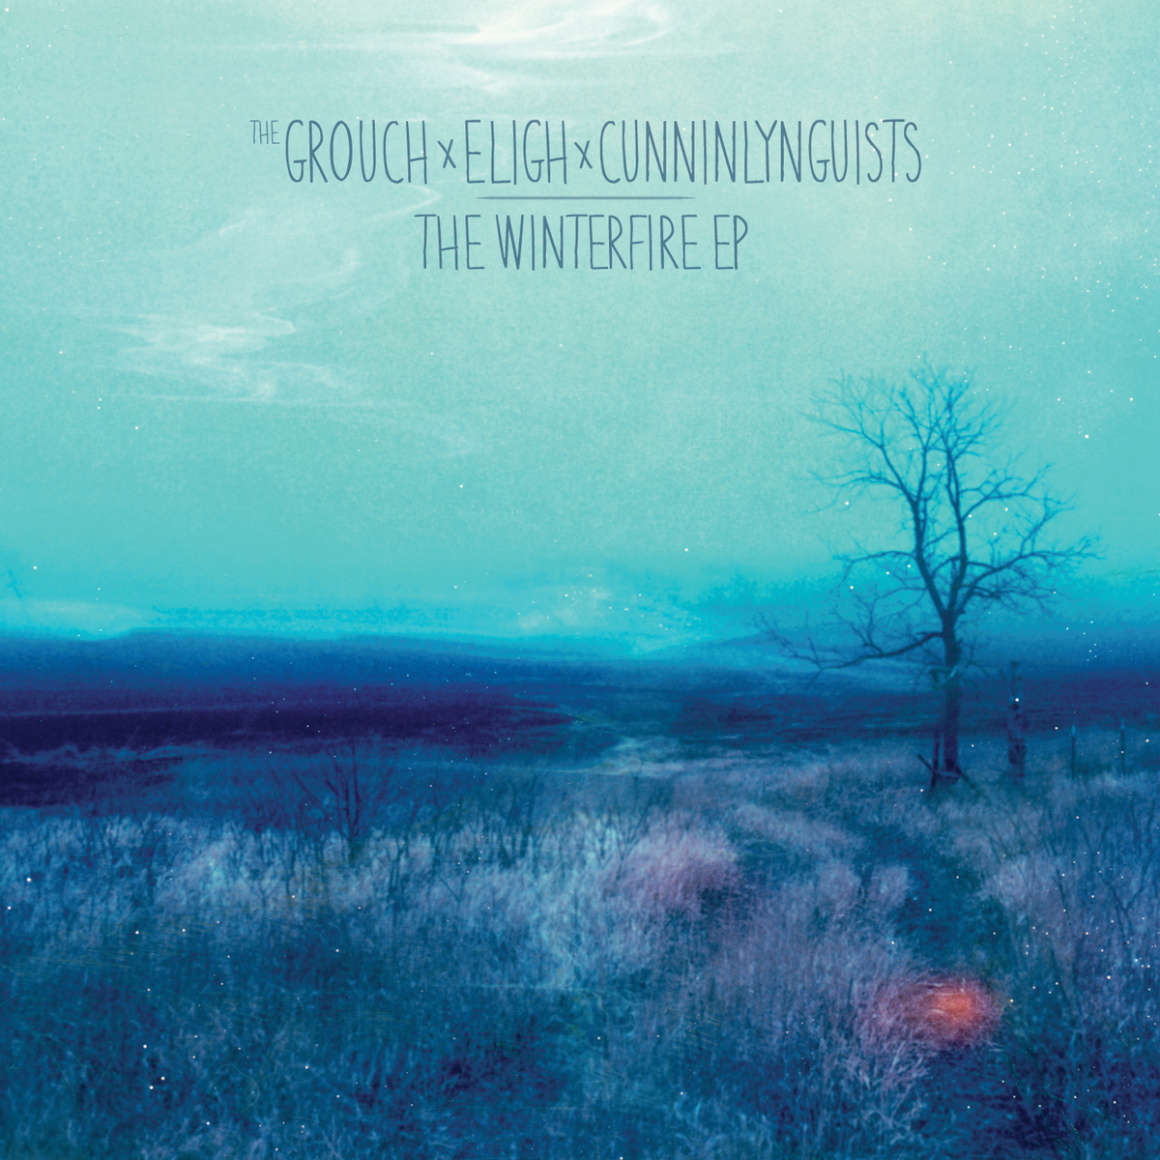 Cunninlynguists The Grouch Eligh